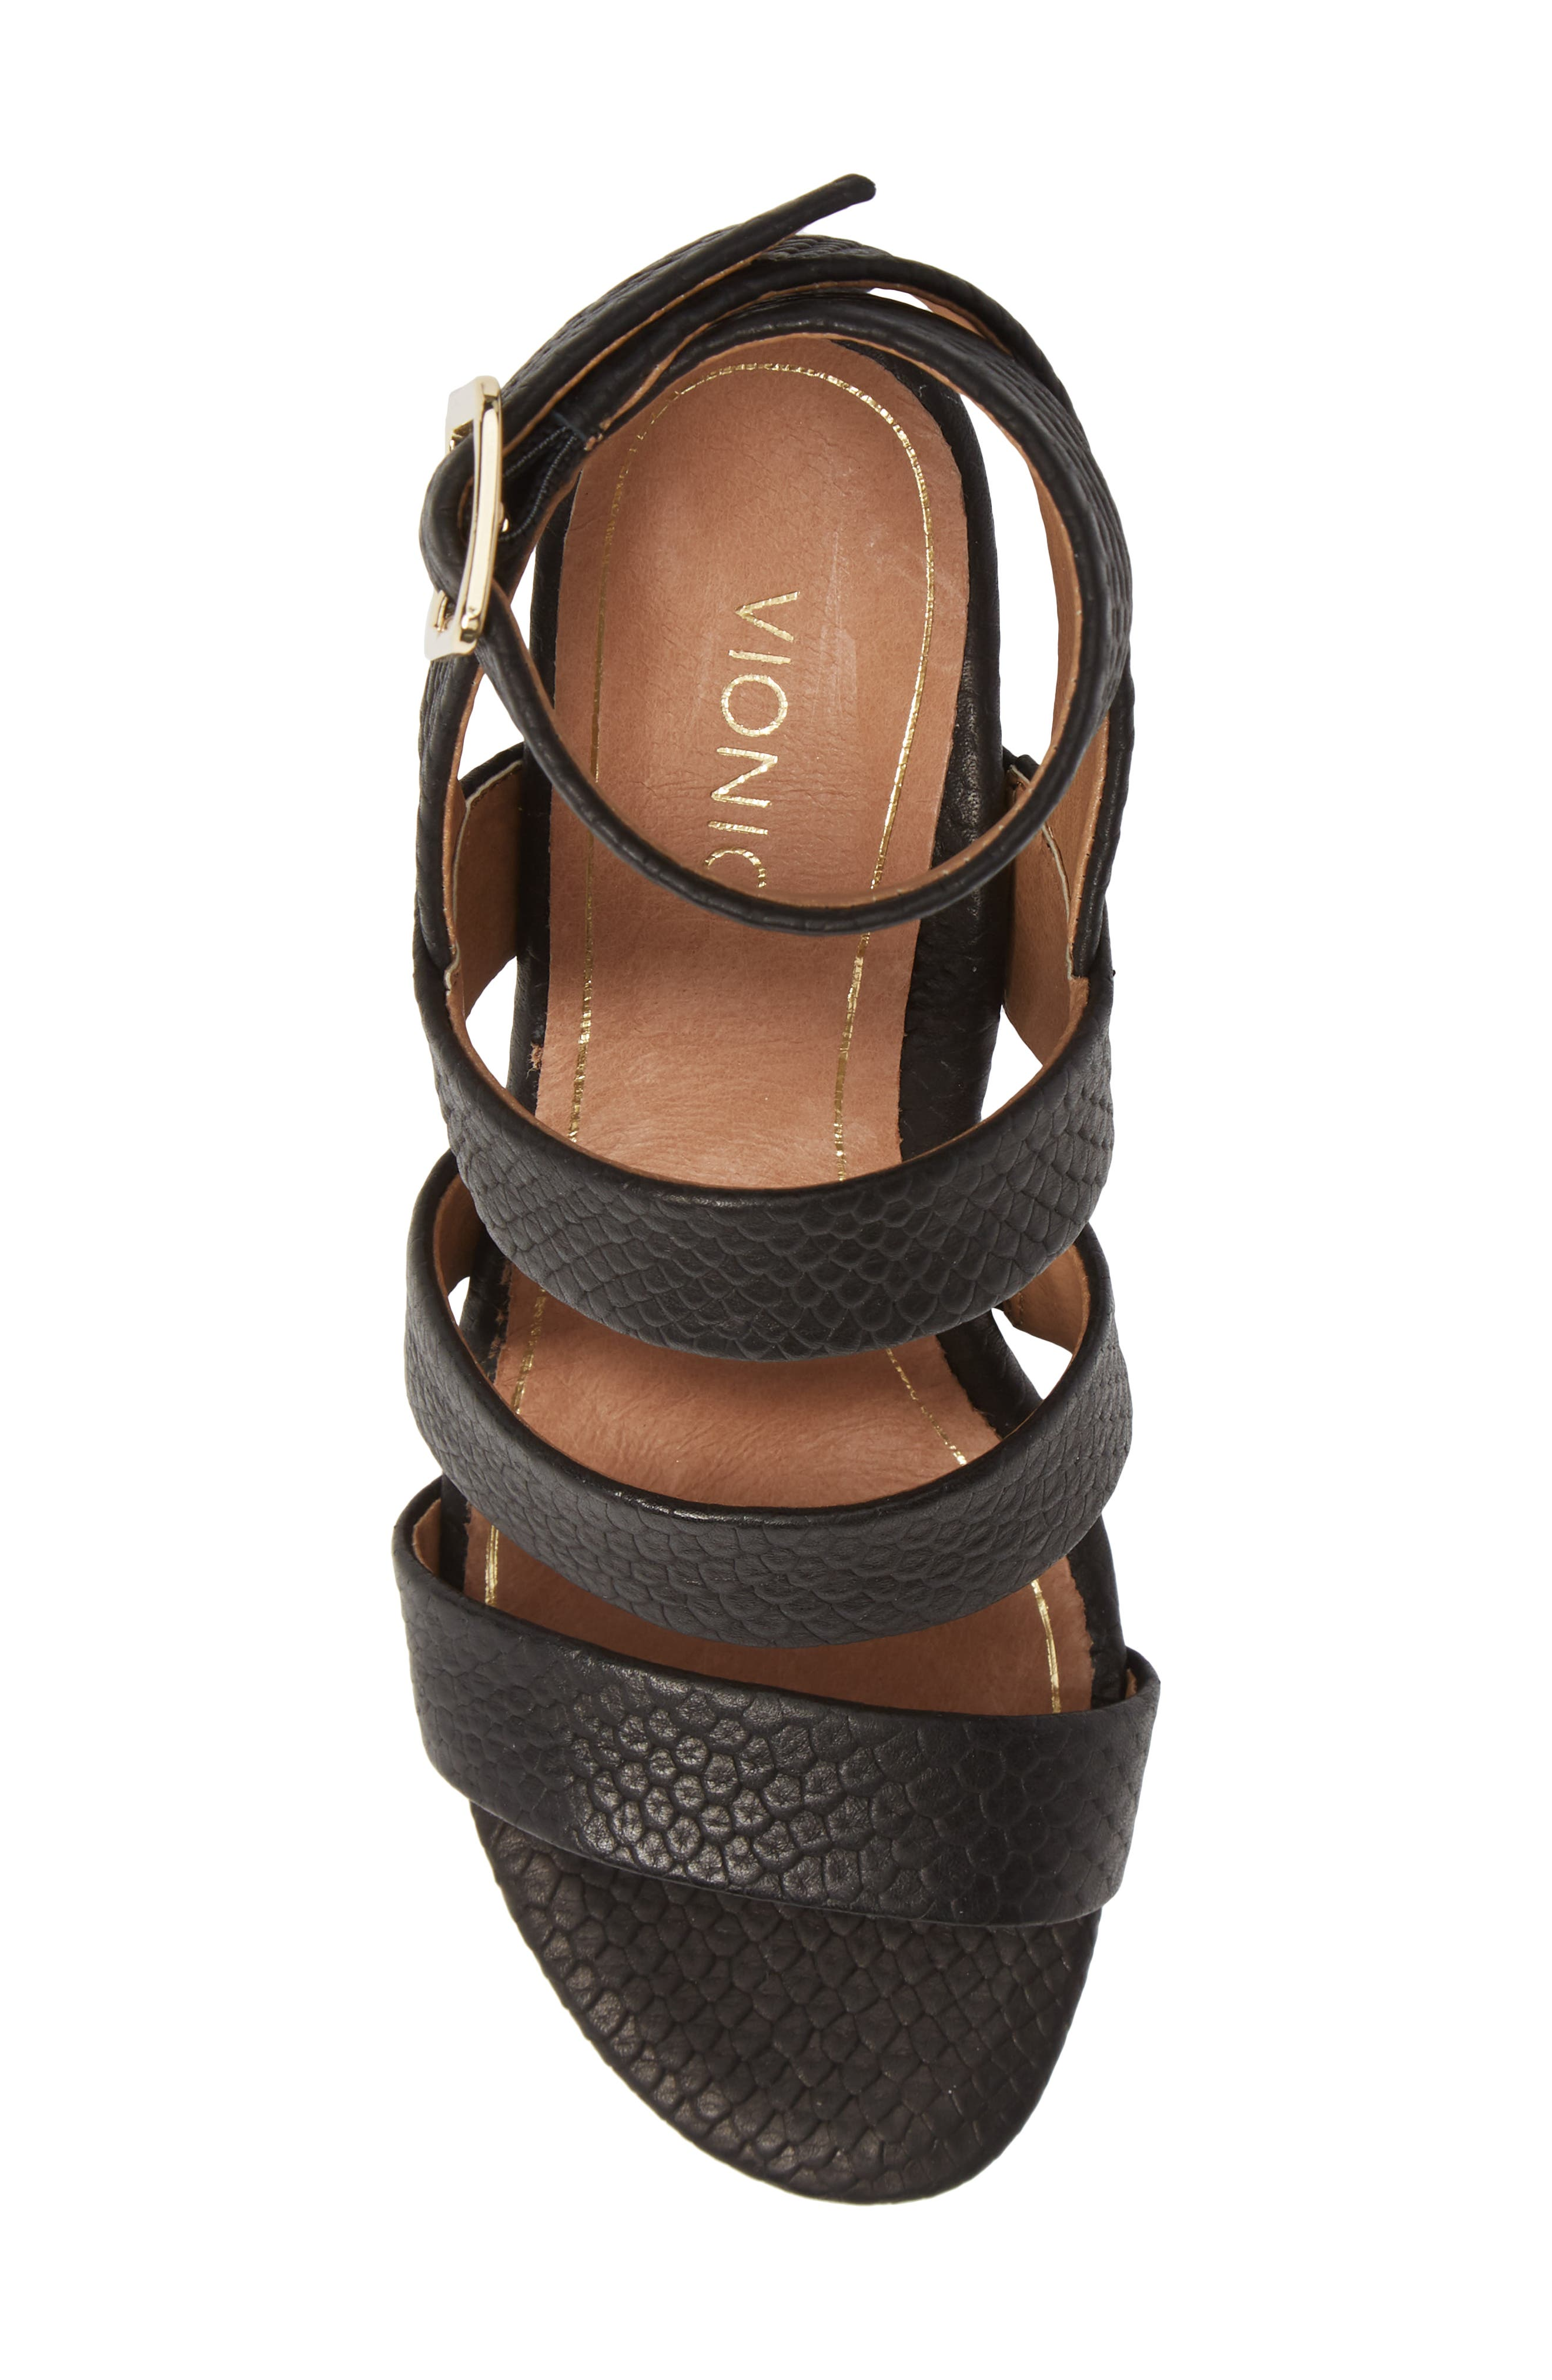 Blaire Block Heel Sandal,                             Alternate thumbnail 5, color,                             BLACK SNAKE EMBOSSED LEATHER